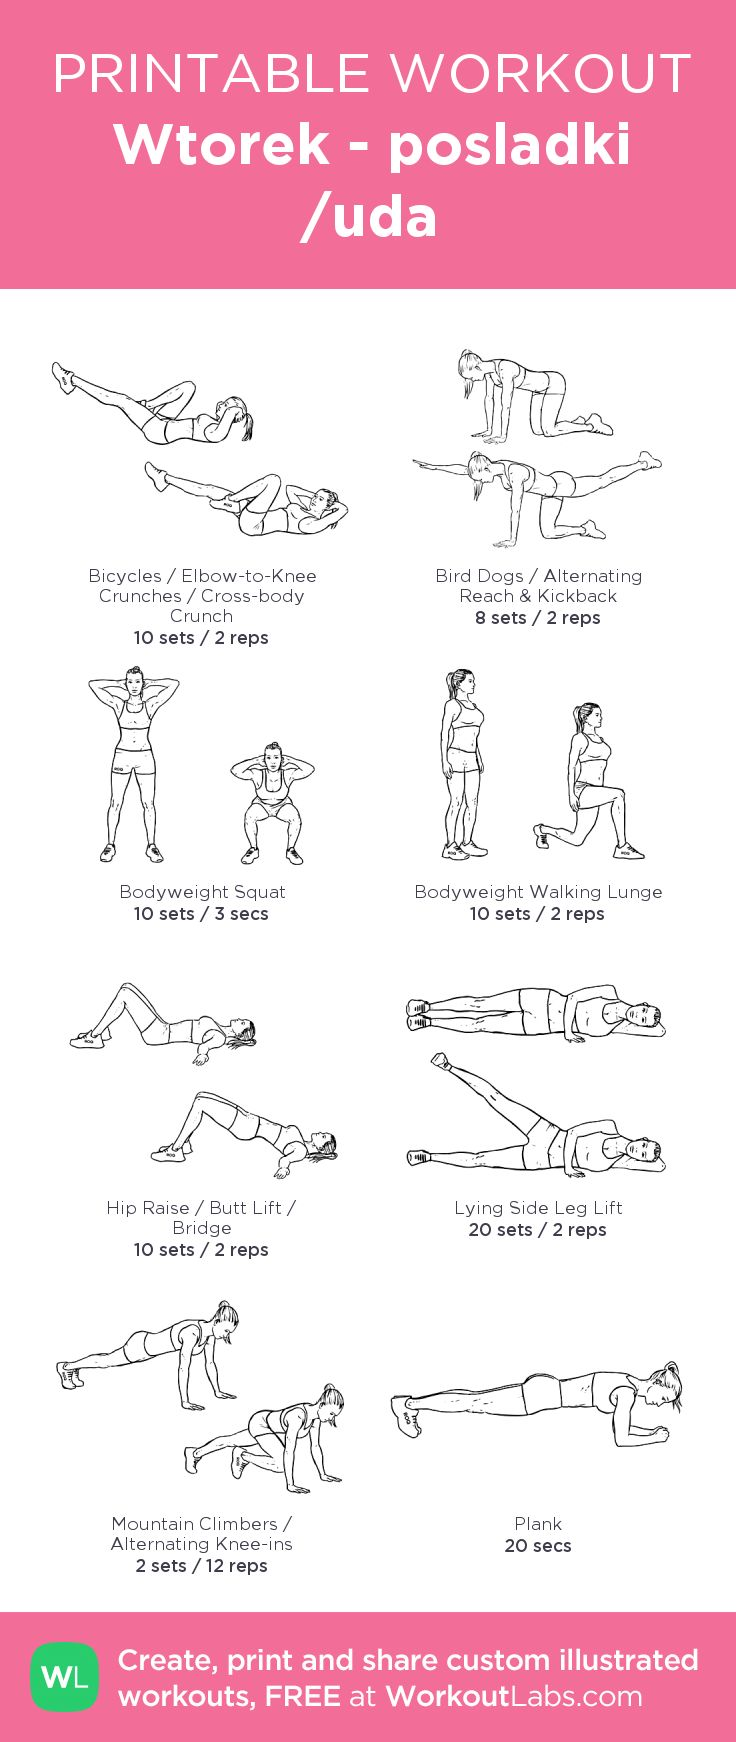 Wtorek - posladki /uda:my visual workout created at WorkoutLabs.com • Click through to customize and download as a FREE PDF! #customworkout